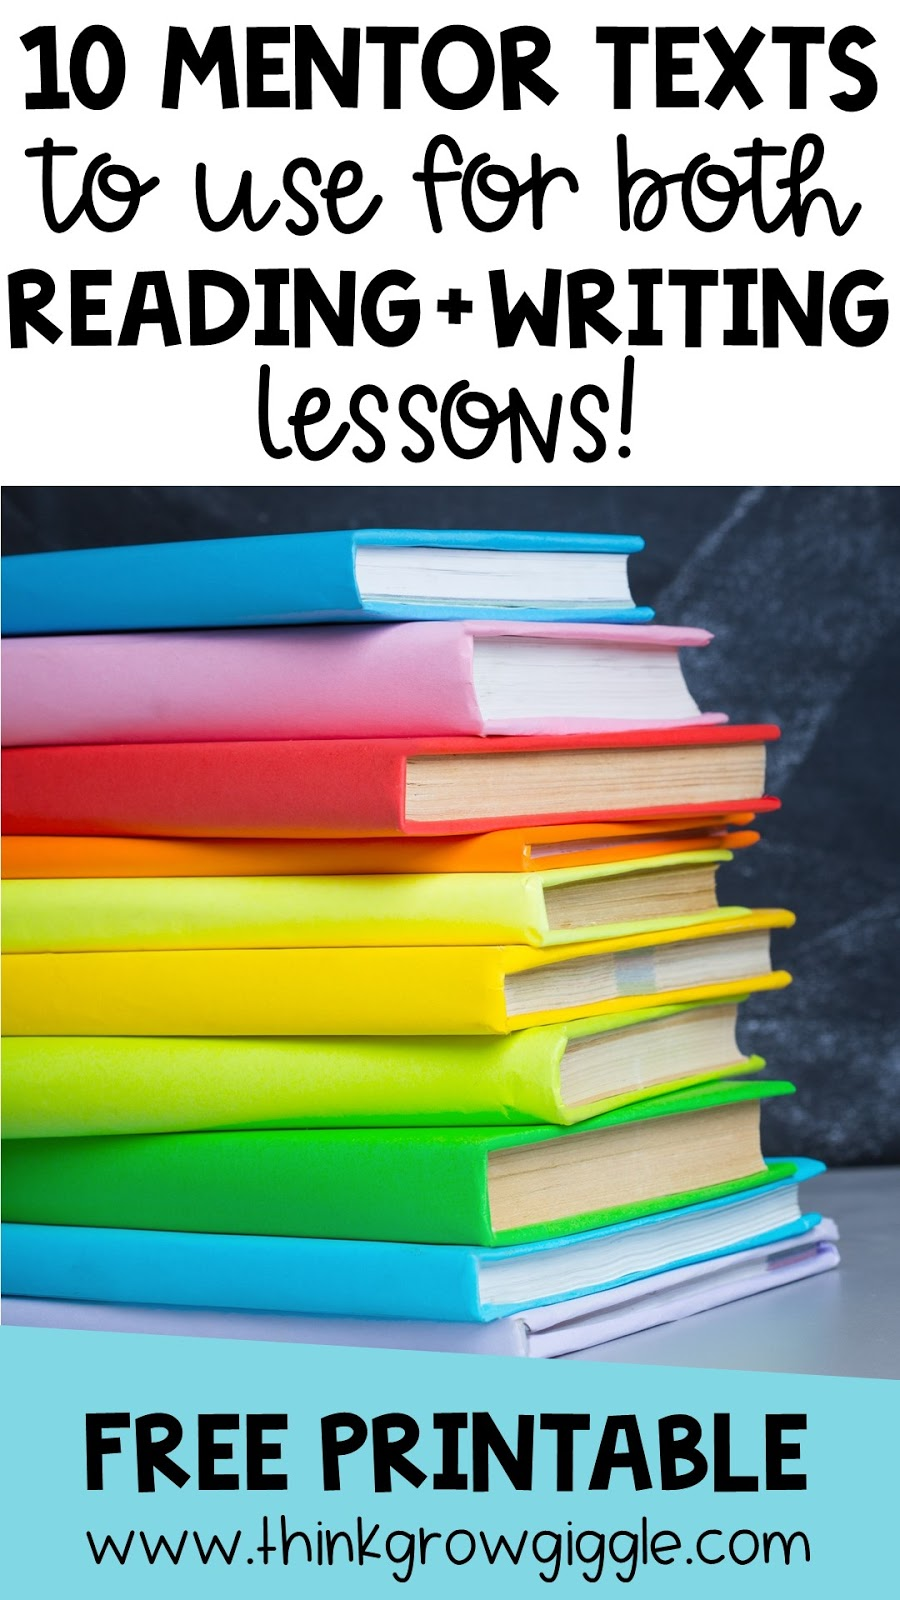 10 Best Mentor Texts to Use for Reading and Writing Lessons